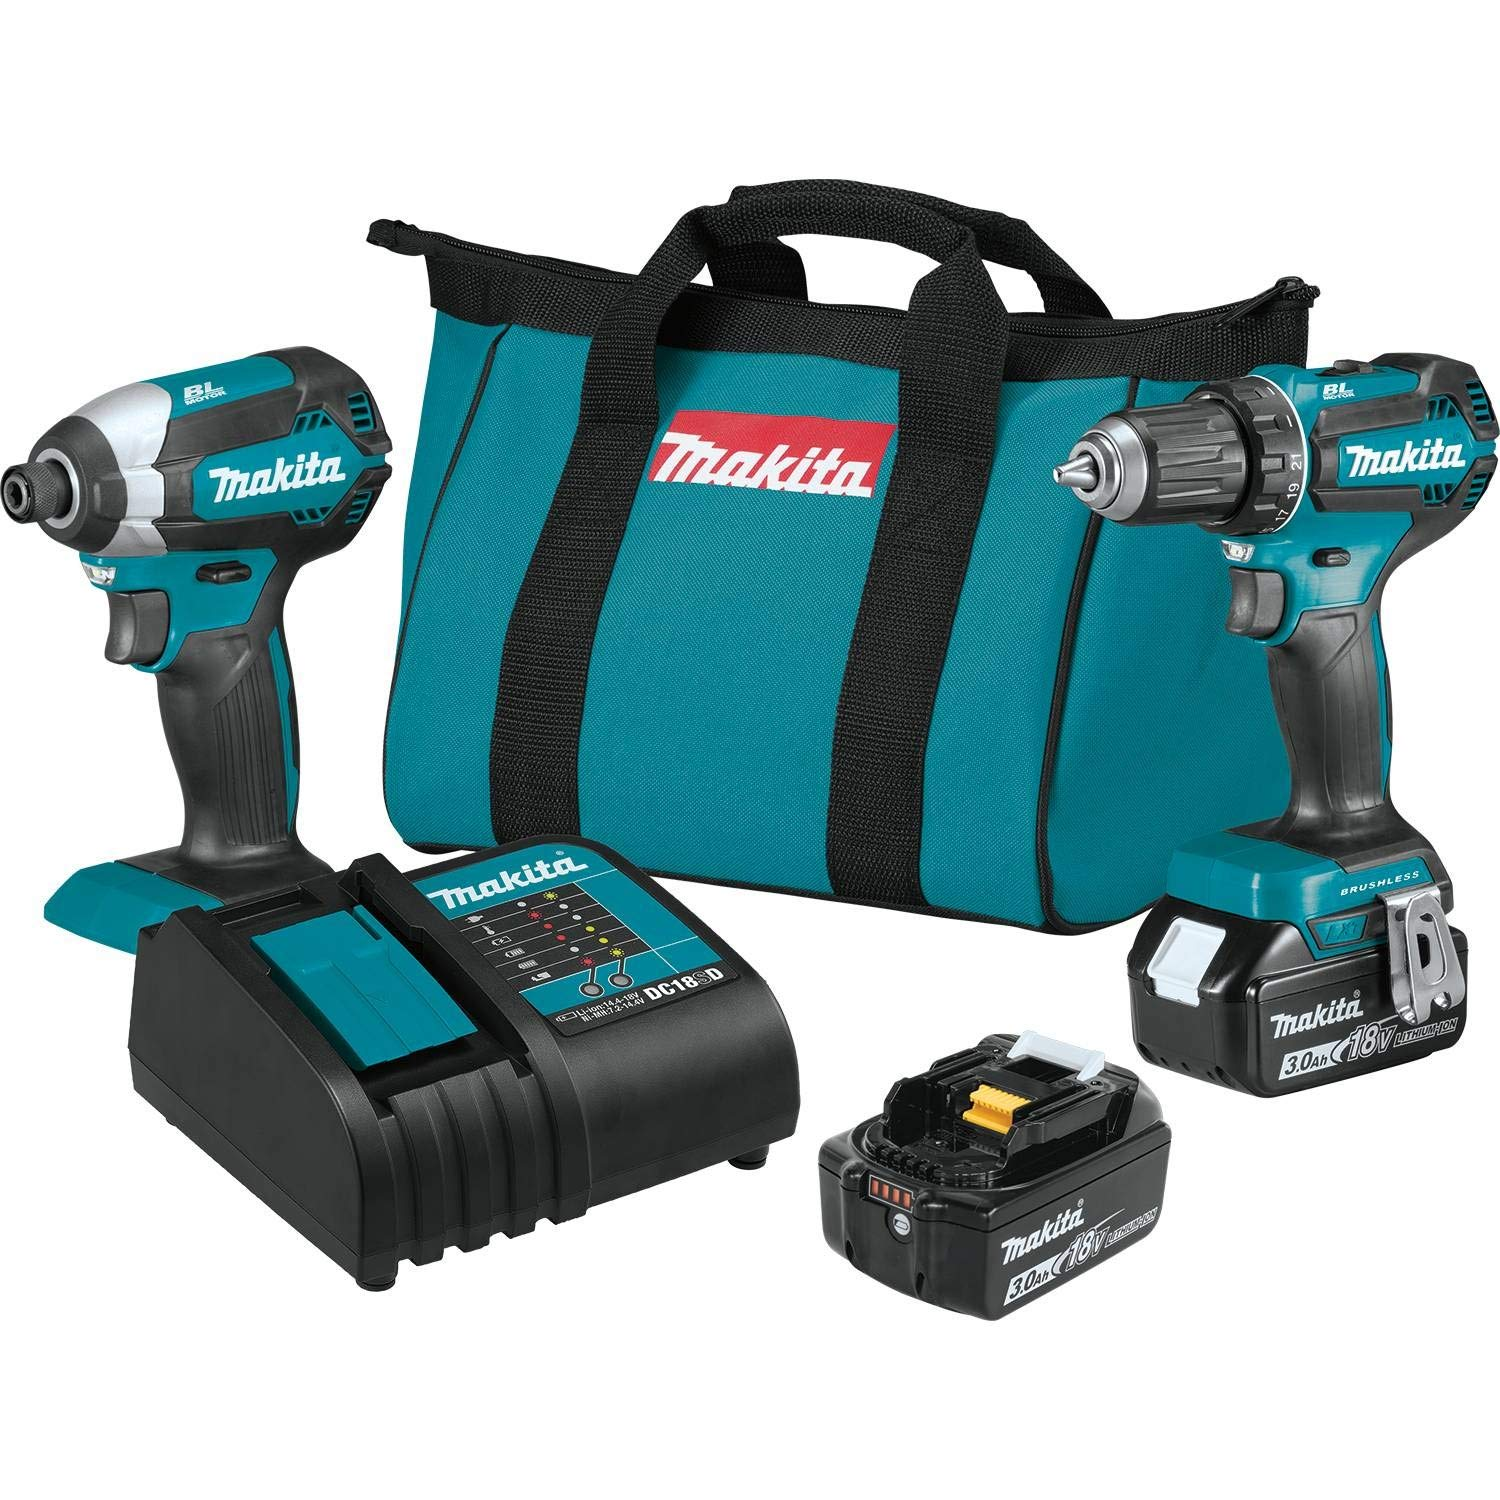 Makita XT281S 18V LXT 2-Pc. Combo Kit 3.0Ah